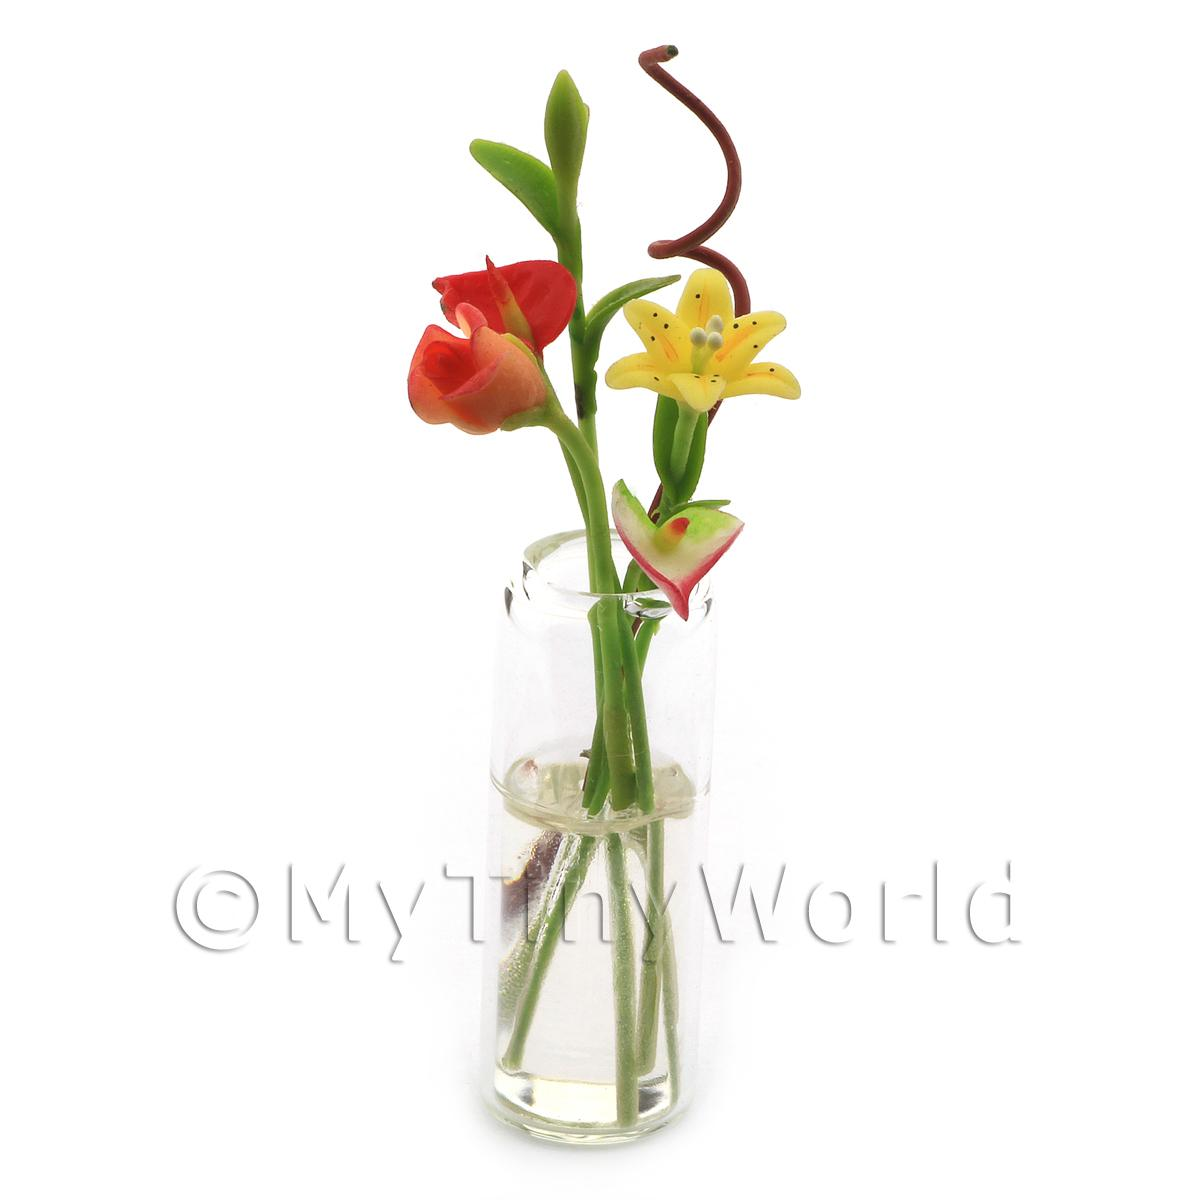 Miniature Mixed Cut Flowers in a Glass Vase